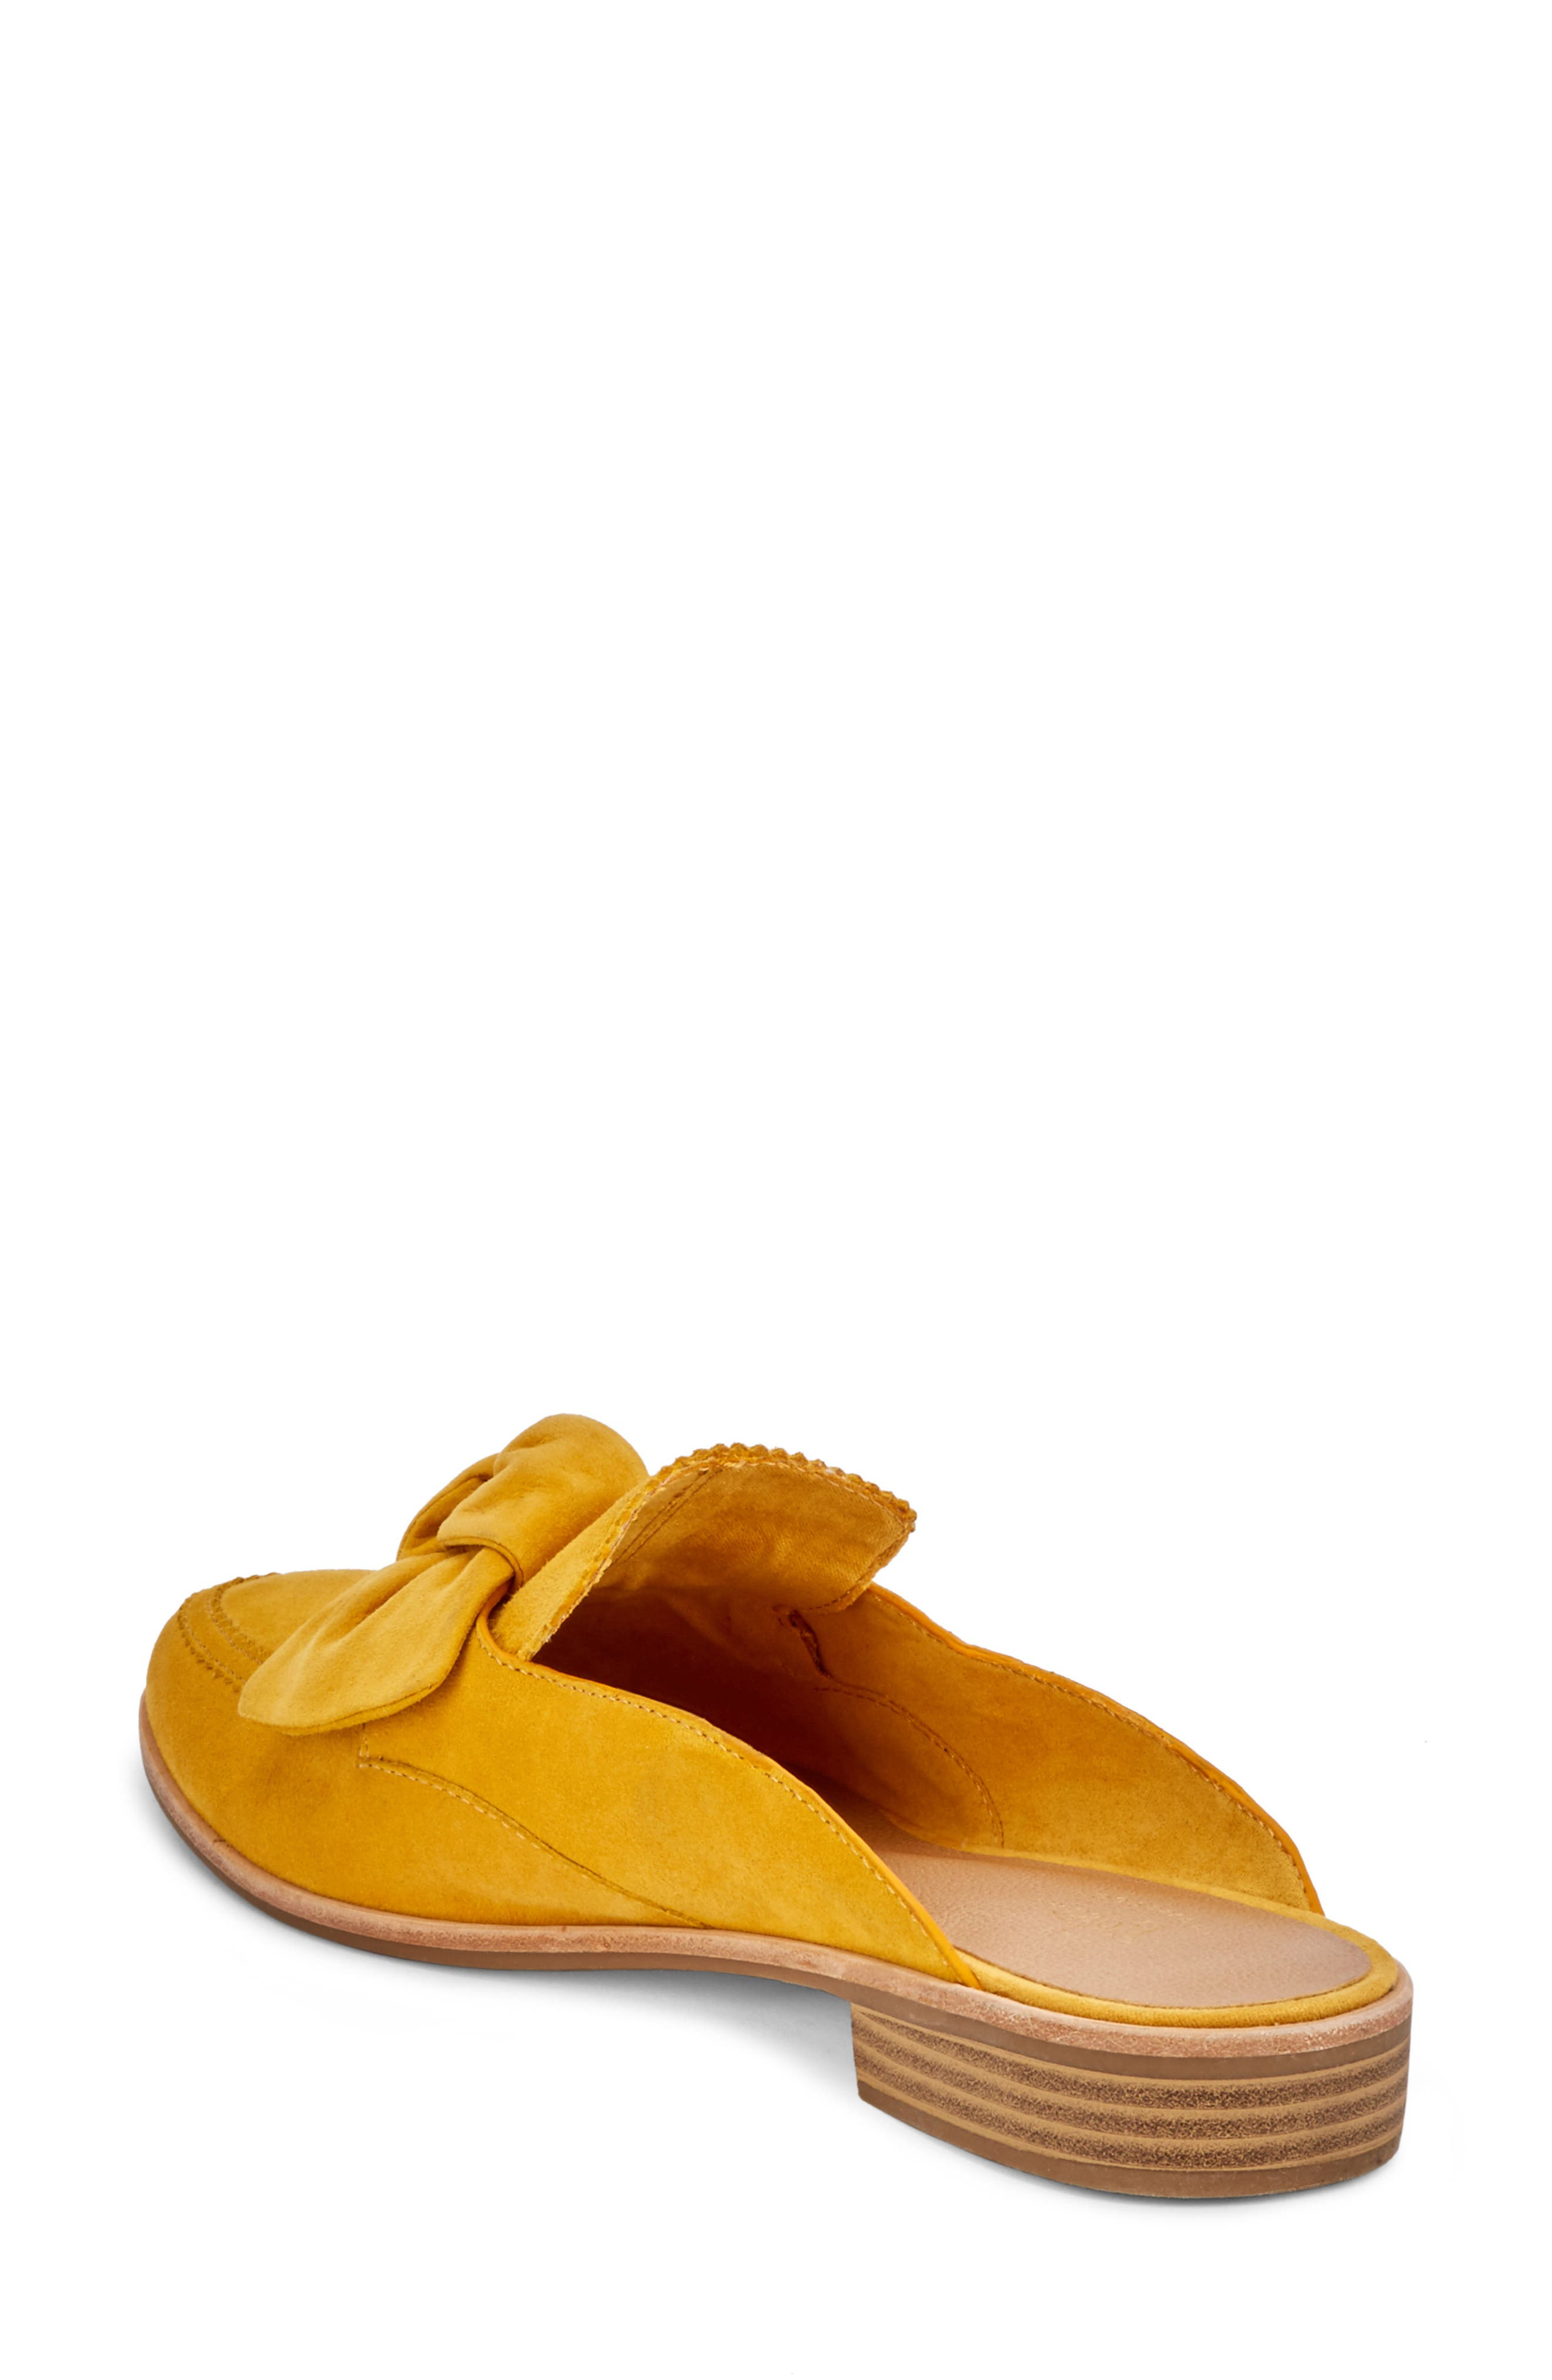 Ebbie Bow Mule,                             Alternate thumbnail 2, color,                             YELLOW SUEDE